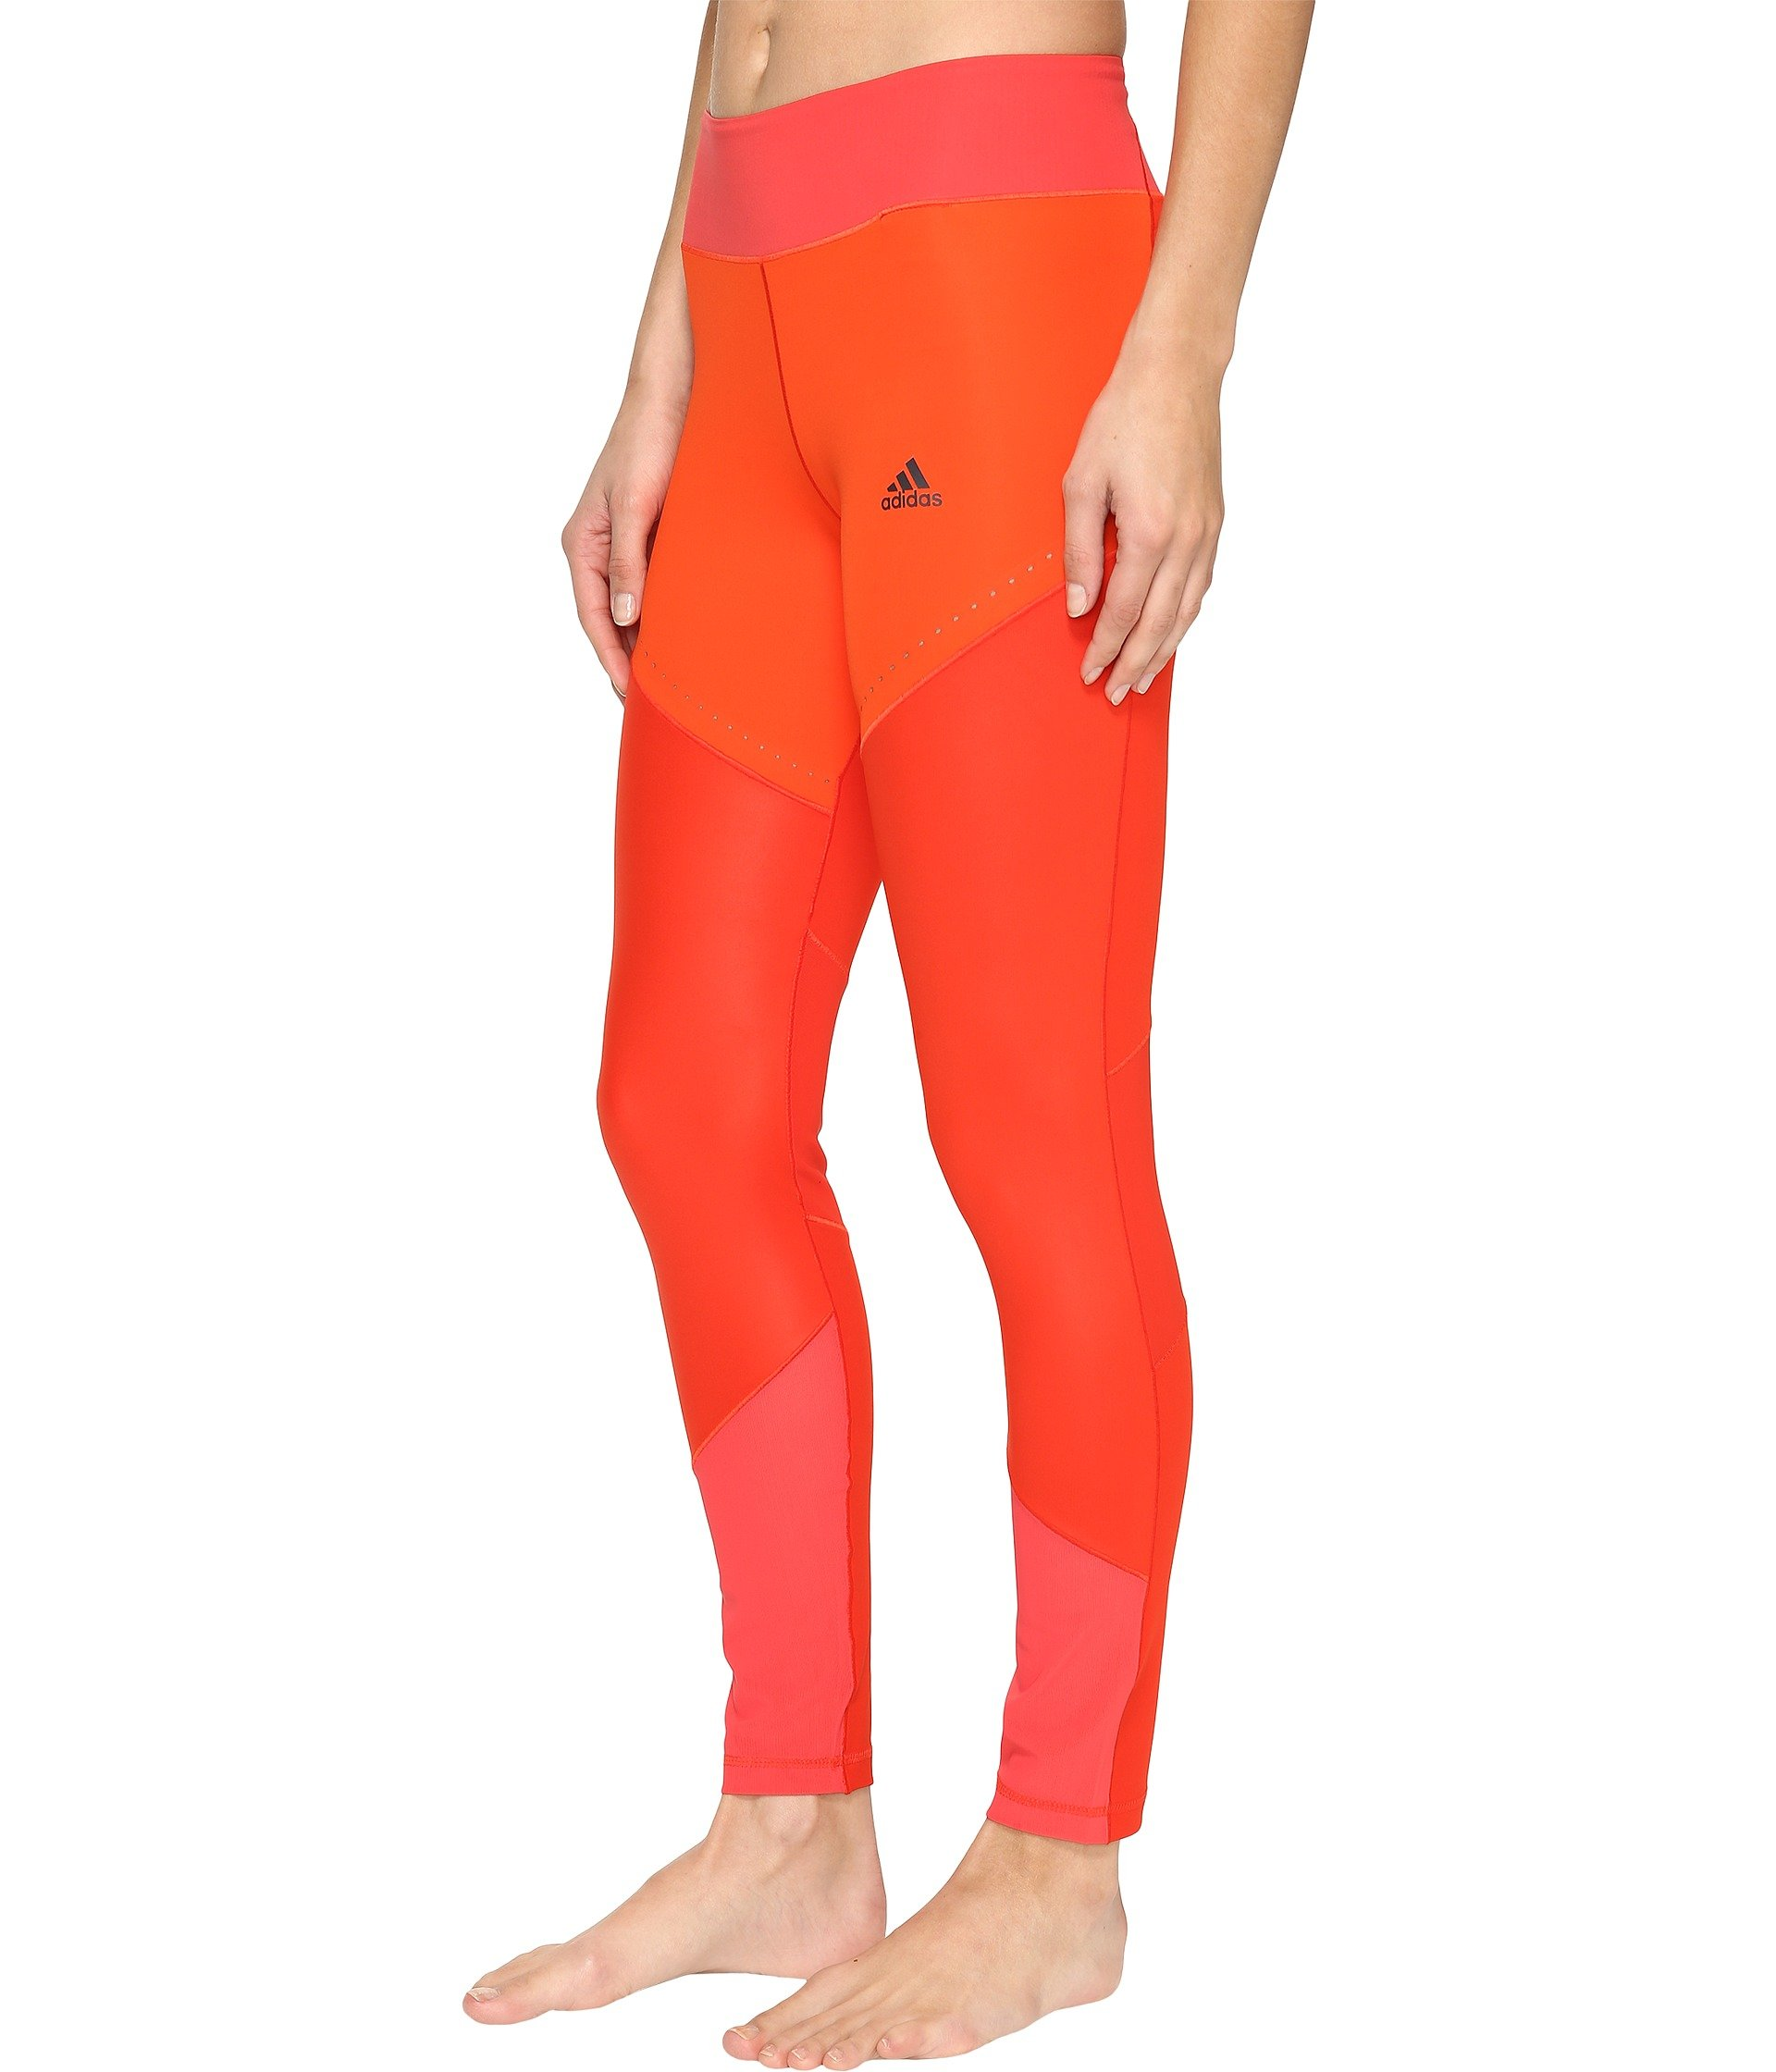 adidas Women's Training Wow Drop Tights, Core Red/Core Pink, X-Small by adidas (Image #3)